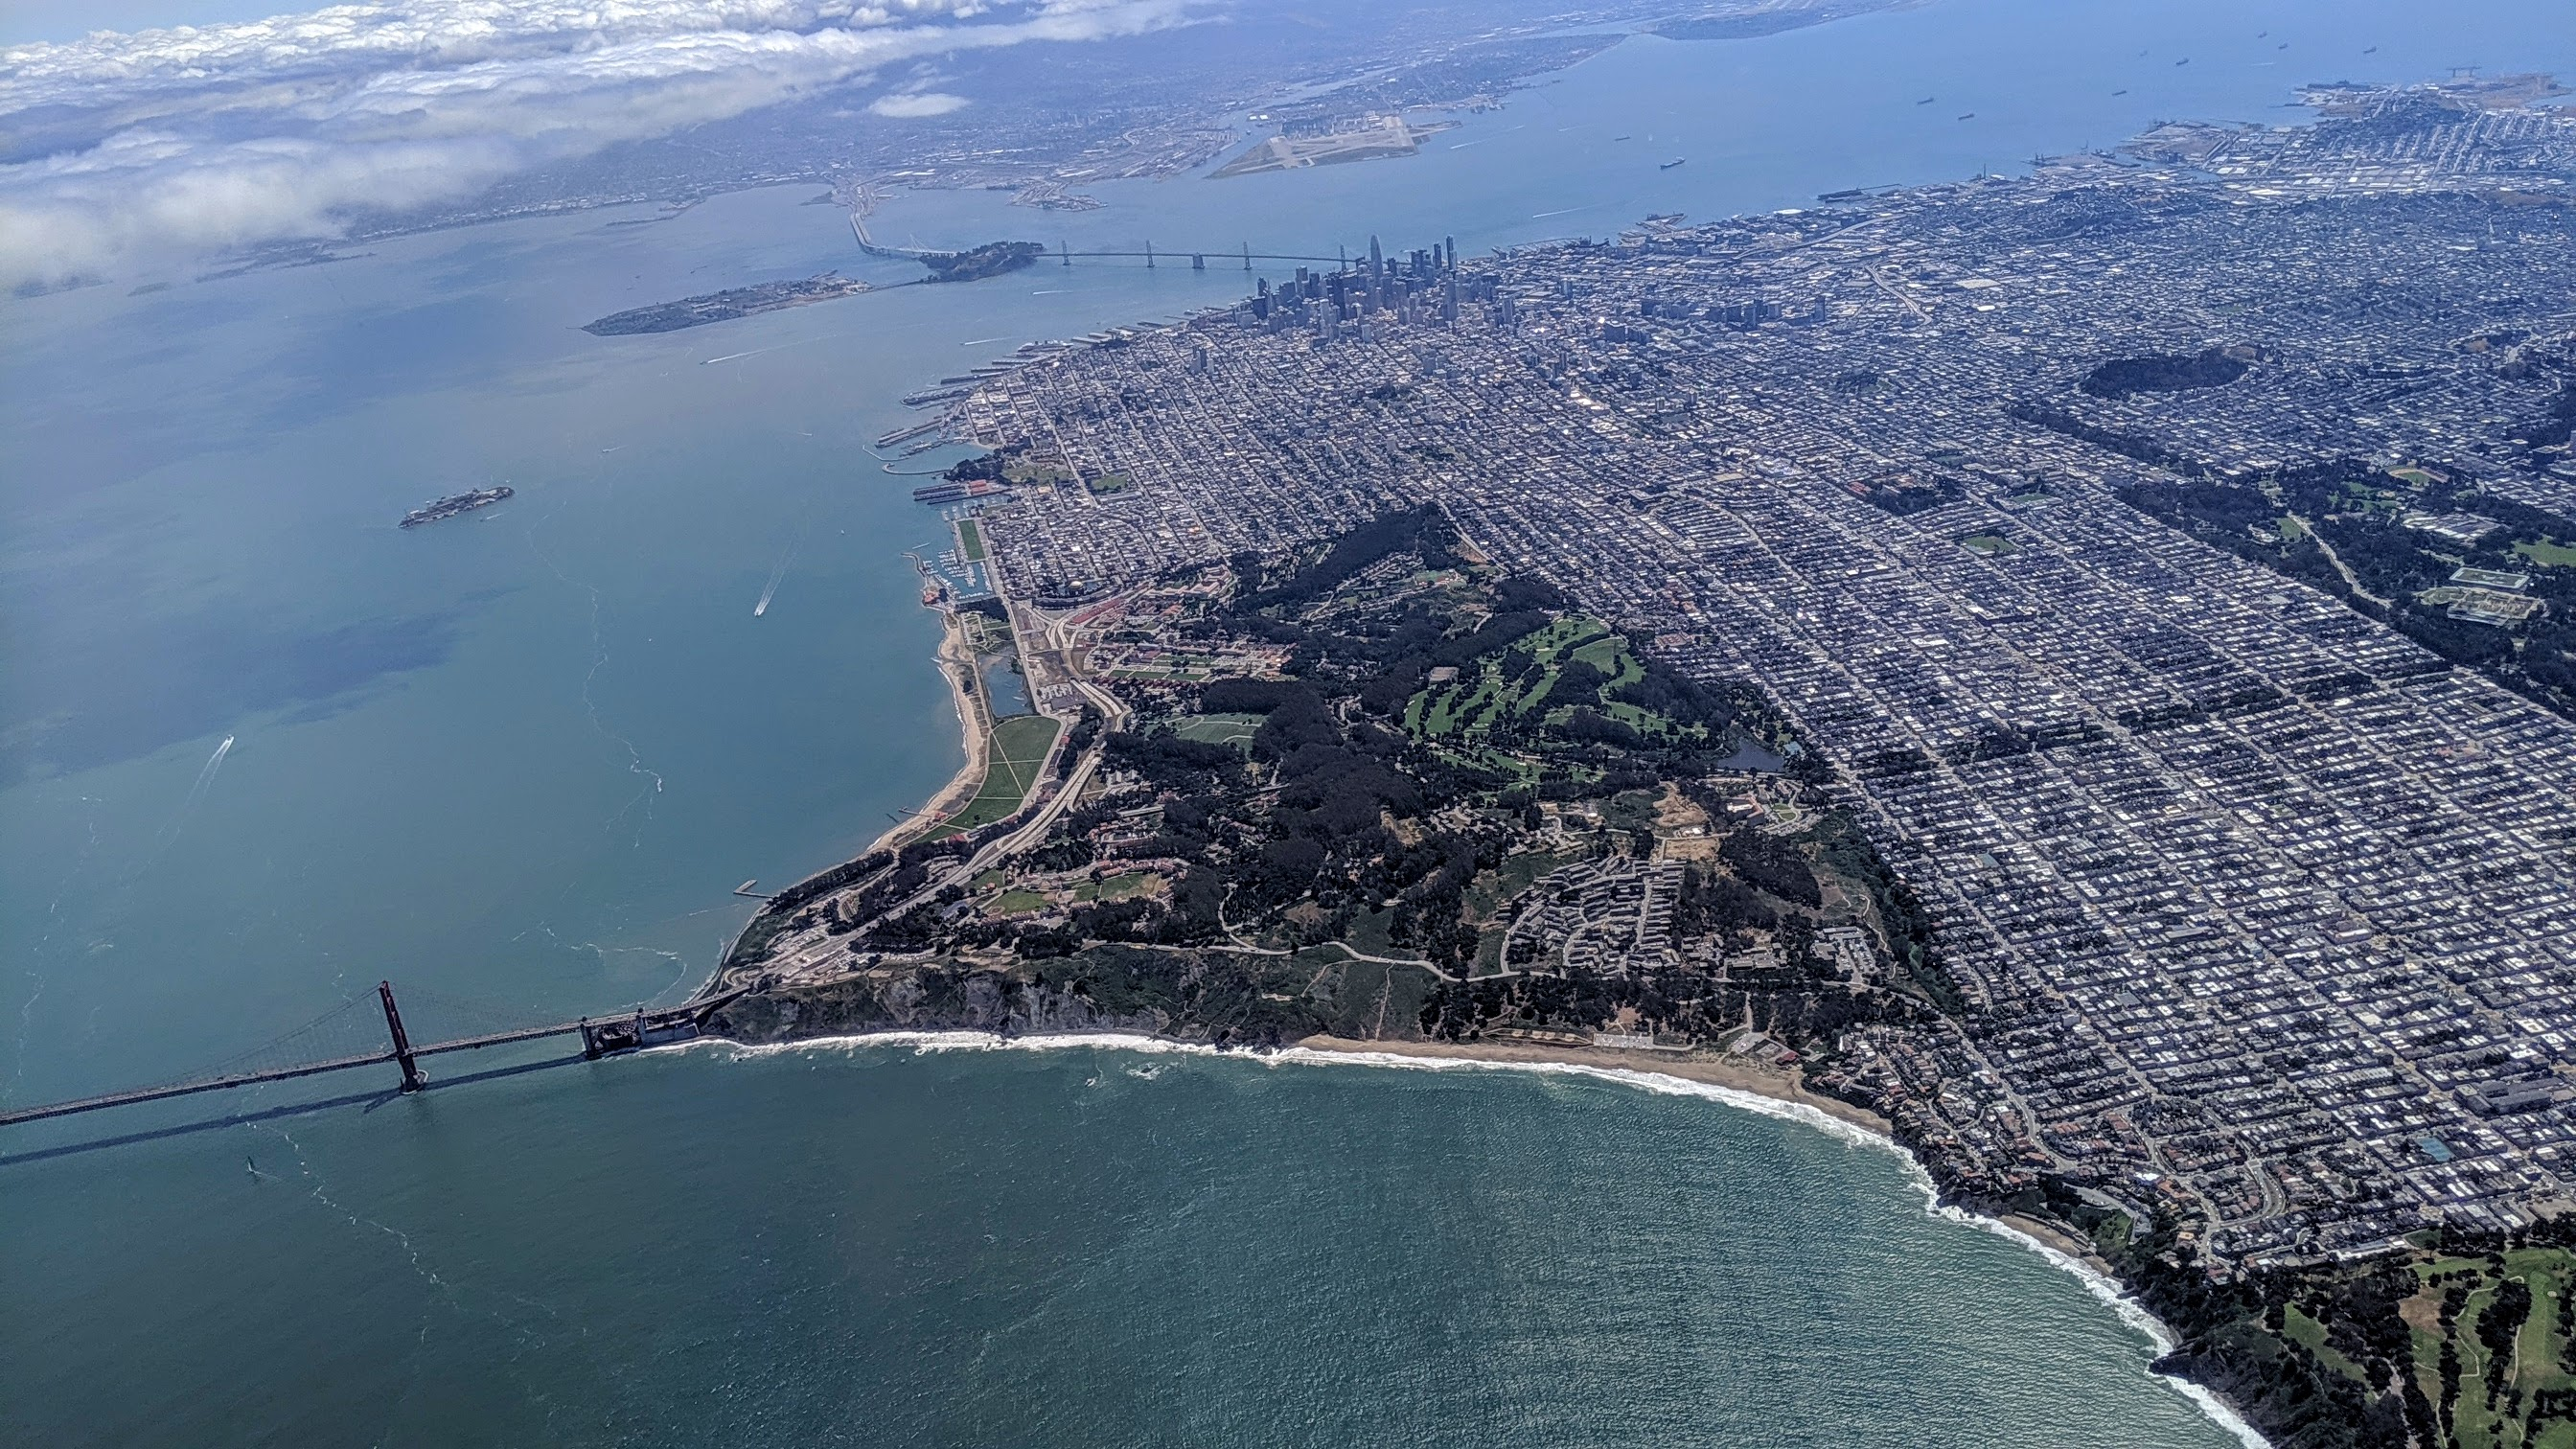 Aerial view of the Presidio, San Francisco, California